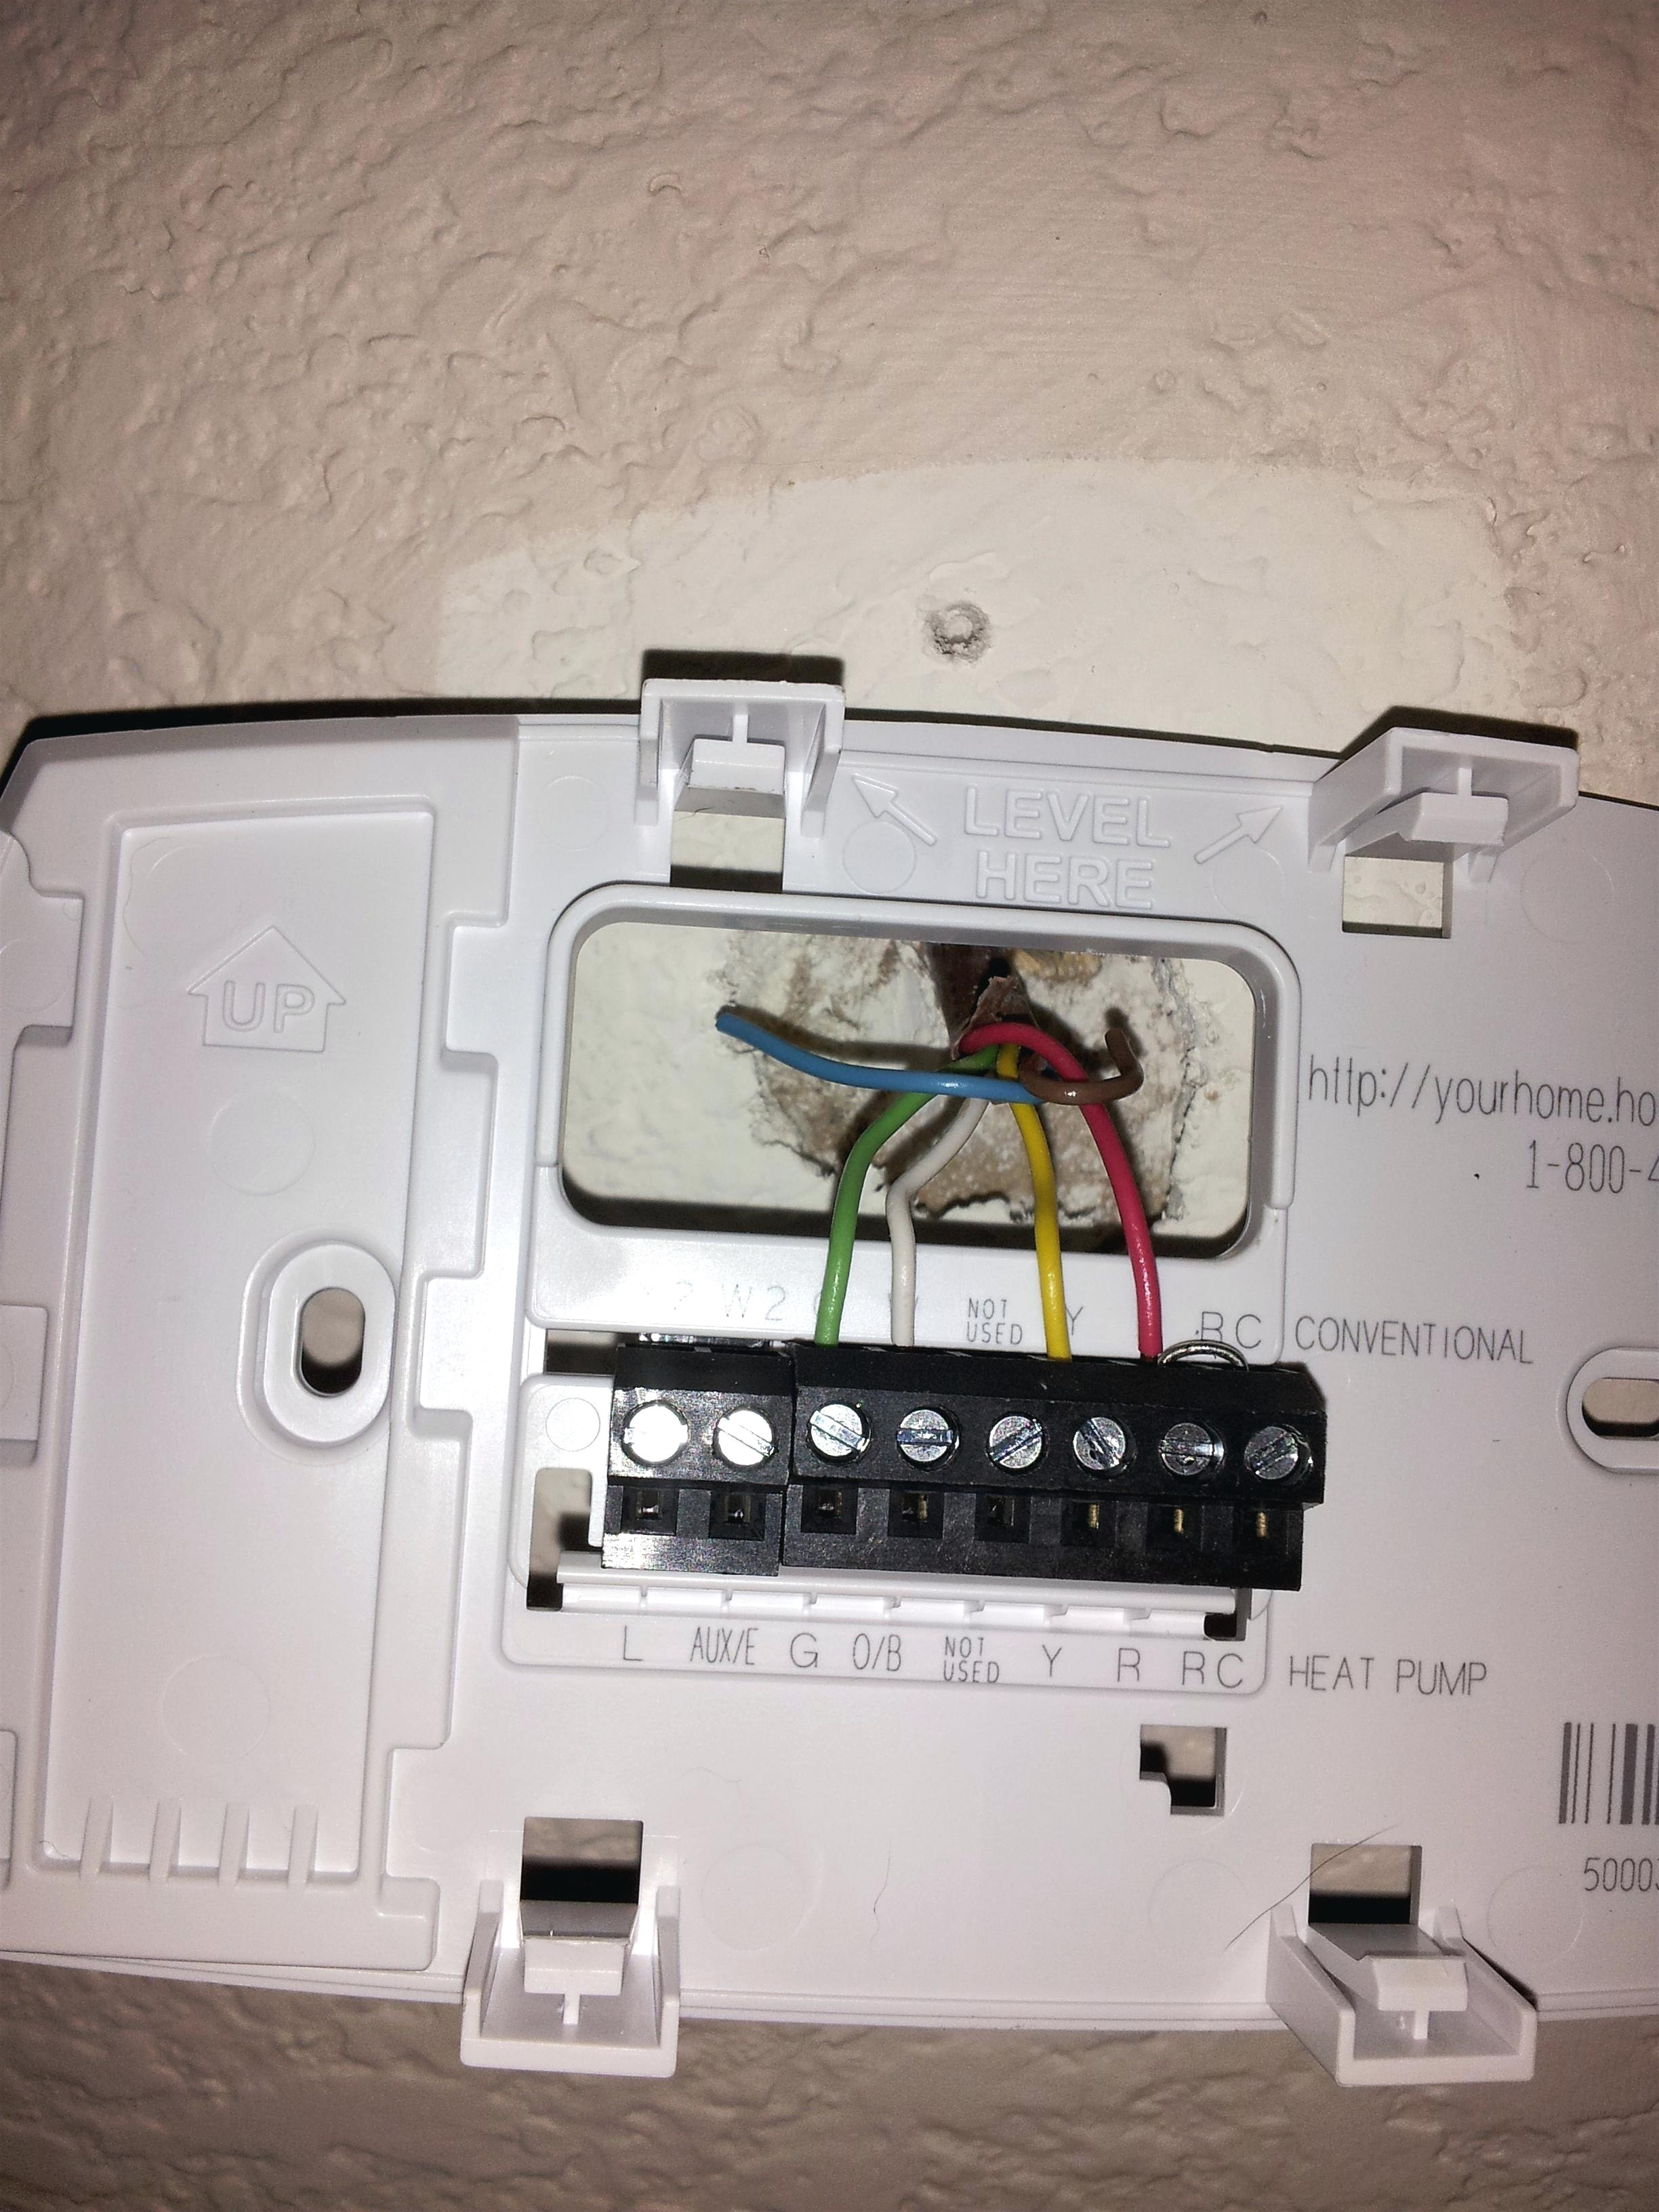 wiring diagrams on your home honeywell thermostat wiring heat pump here is a diagram of the wiring before the old thermostat wiring diagrams on your home honeywell thermostat wiring heat pump